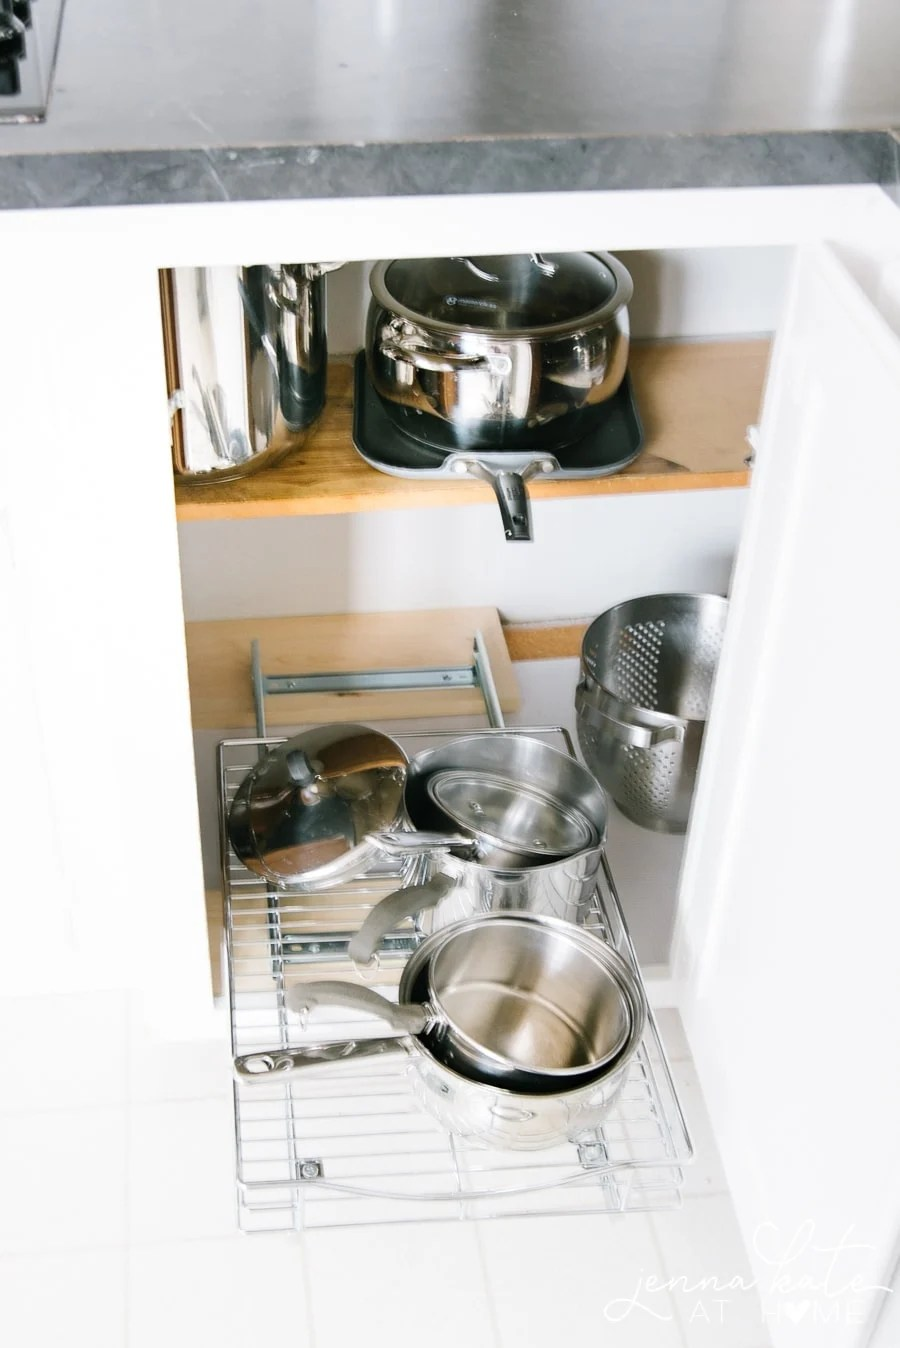 Pull-out shelves for cupboards to organize pots and pans